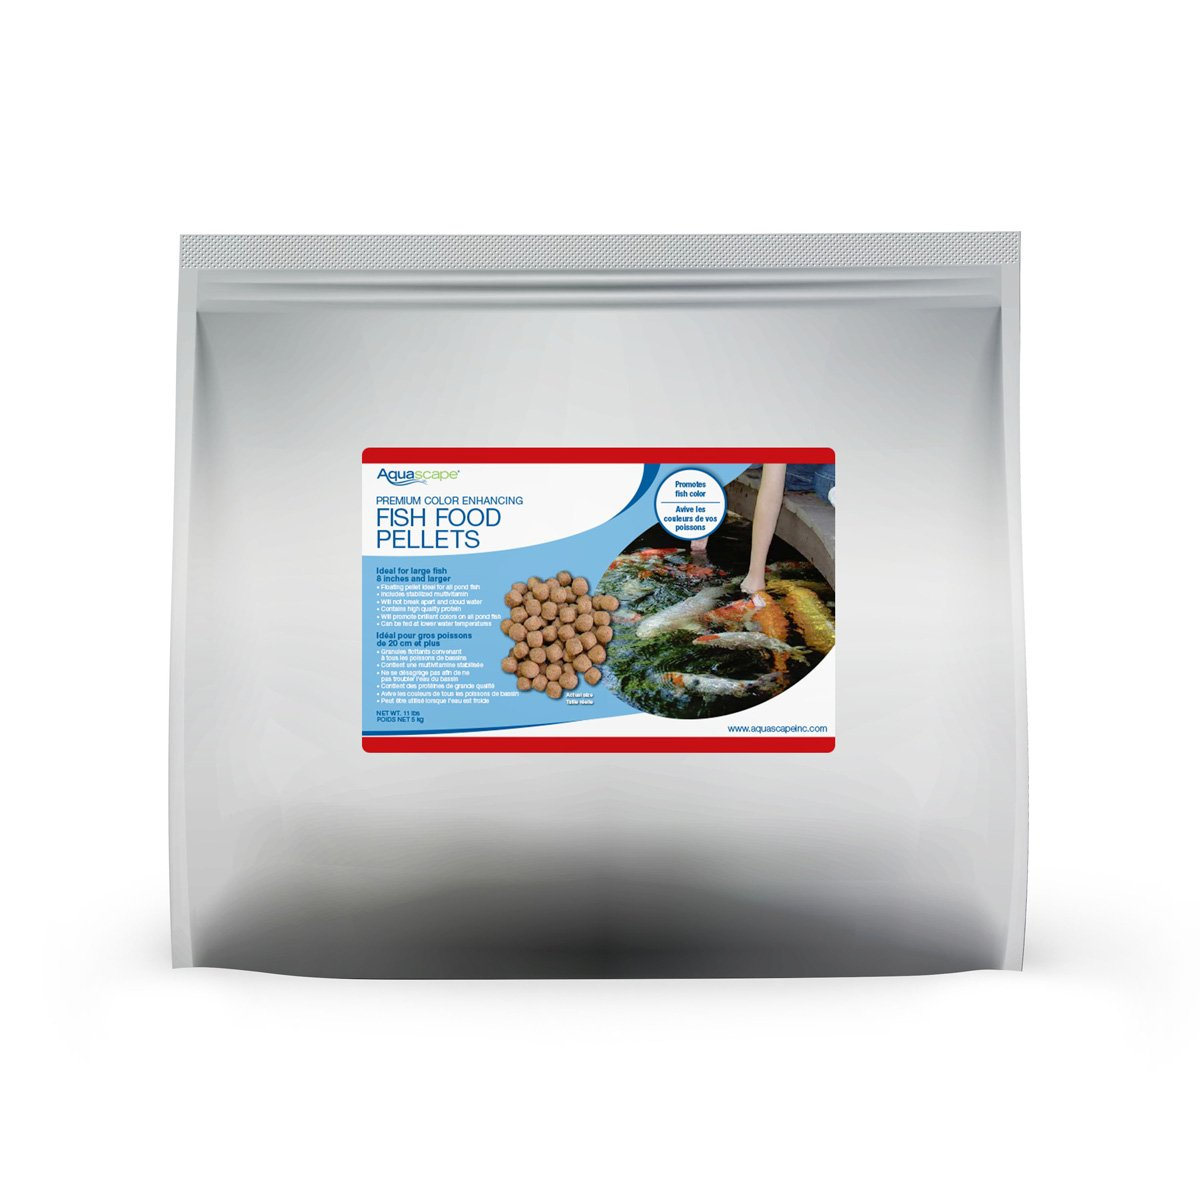 Aquascape Premium Color Enhancing Fish Food Pellets for Pond, Koi, Goldfish and More (11 Pound)